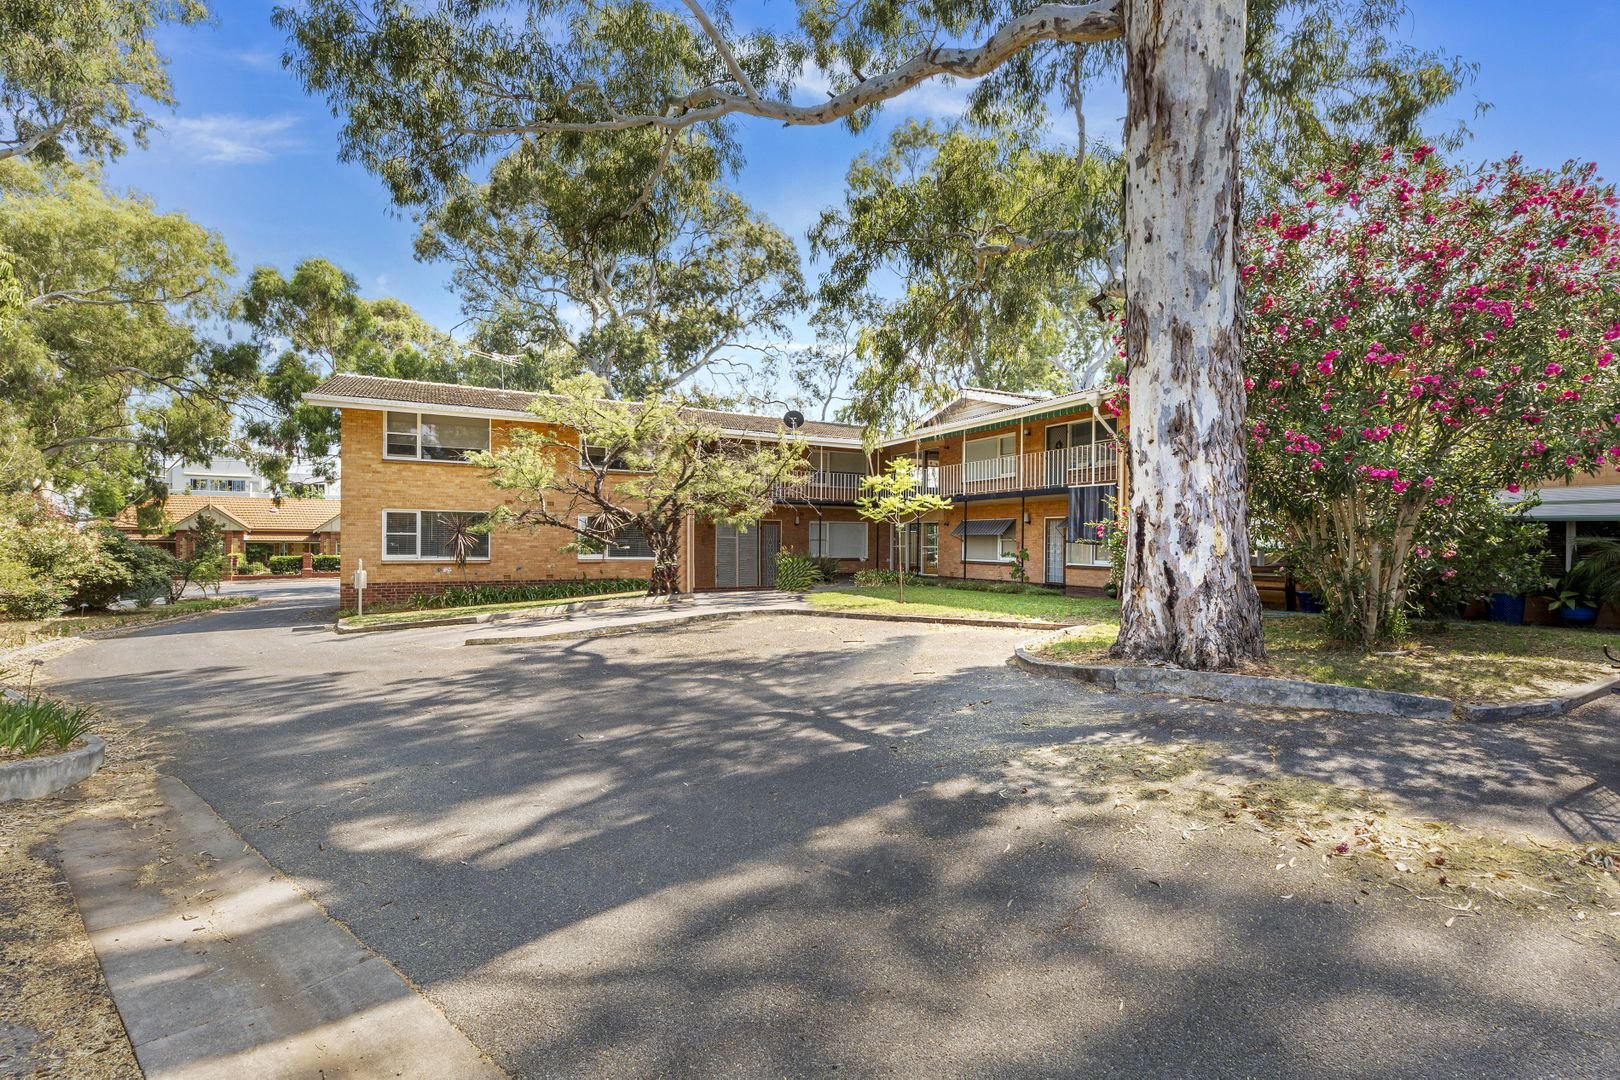 10/20 Statenborough Street, Leabrook SA 5068, Image 0